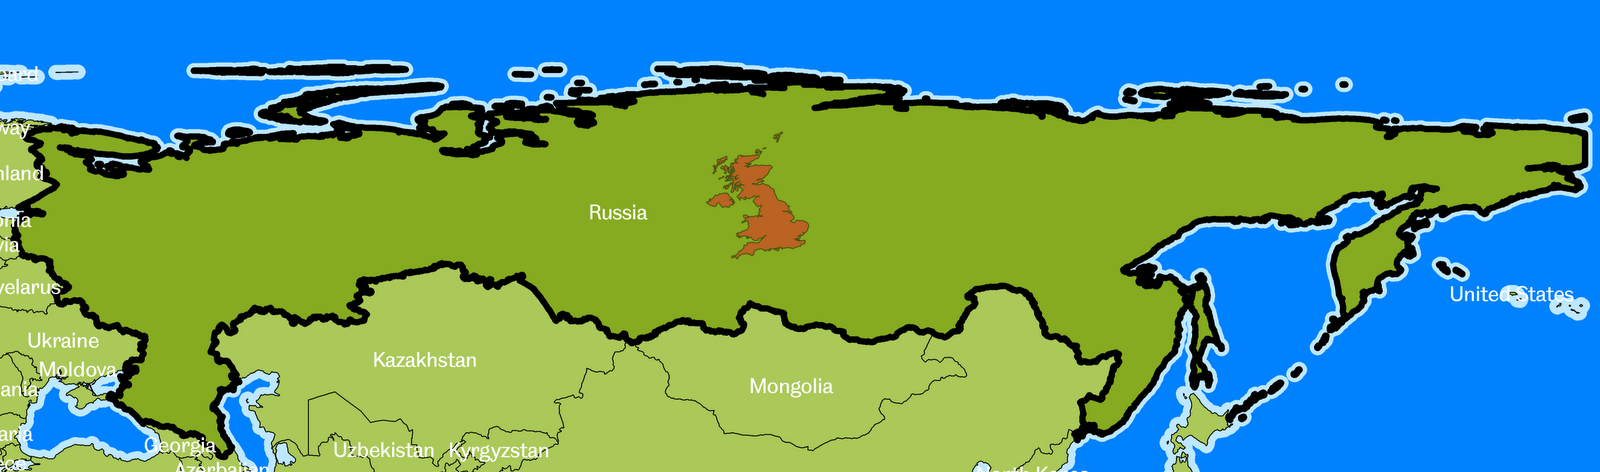 Russia Information And Facts Map